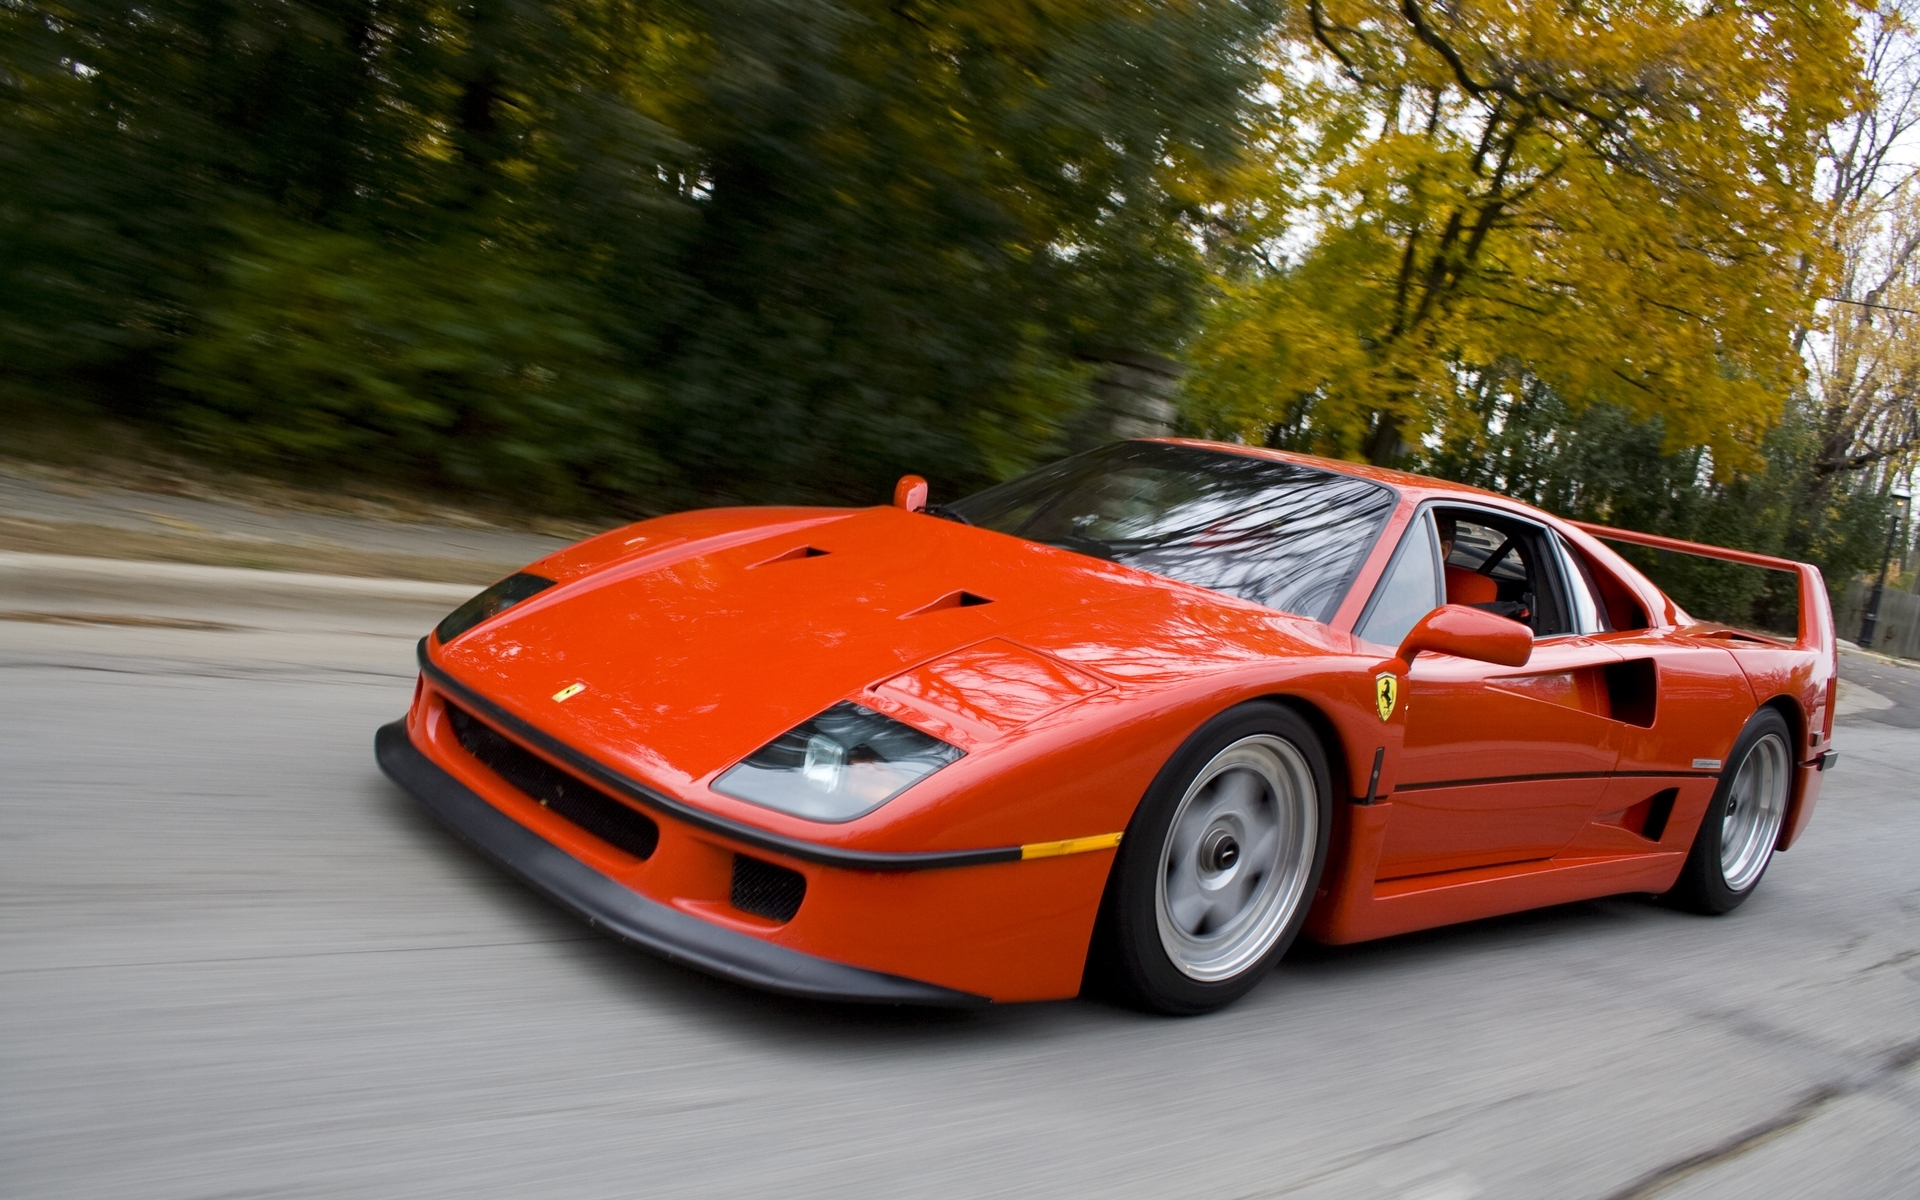 49033 download wallpaper Transport, Auto, Ferrari screensavers and pictures for free